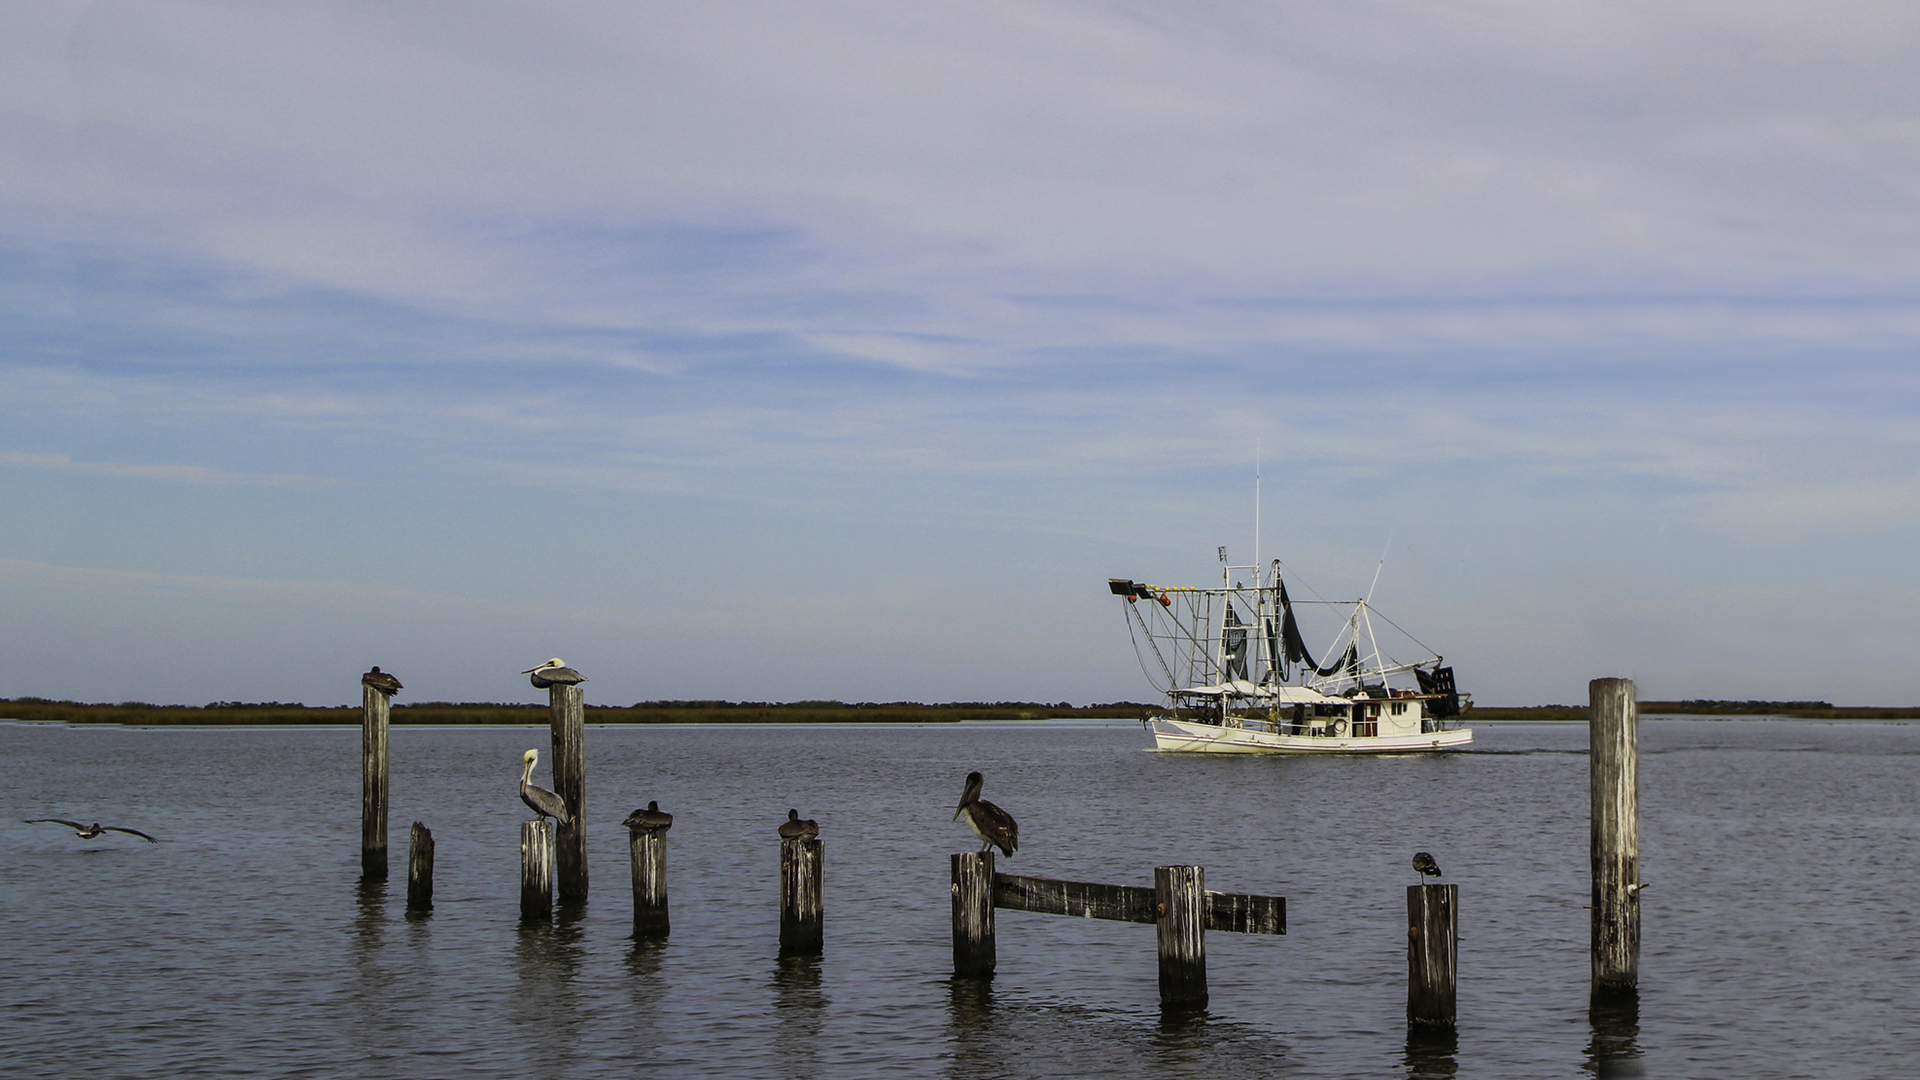 Coastal Communities Overwhelmingly Support Regulation of Industrial Pogie Fishing in the Louisiana Surf Zone